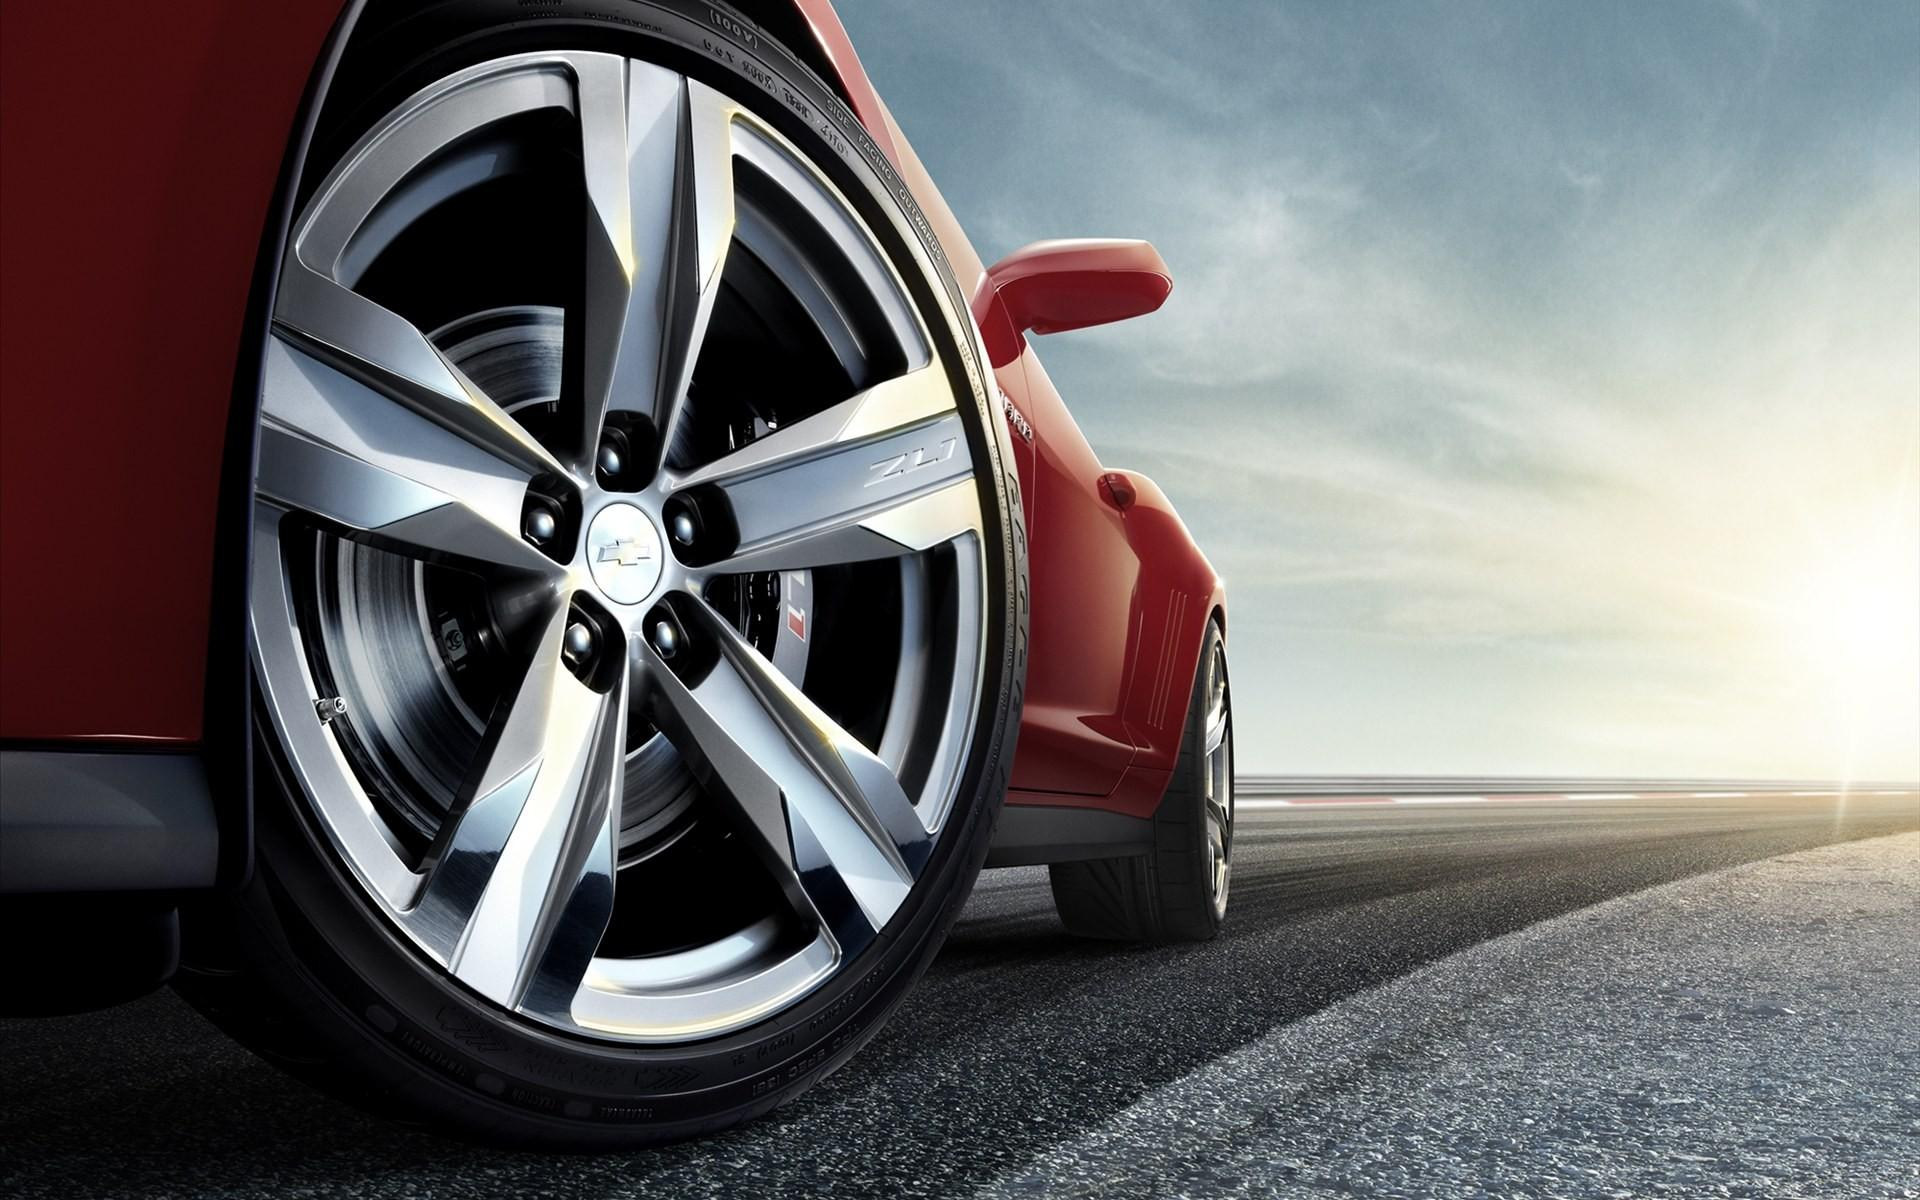 Best 55+ Wheels Wallpapers on HipWallpapers